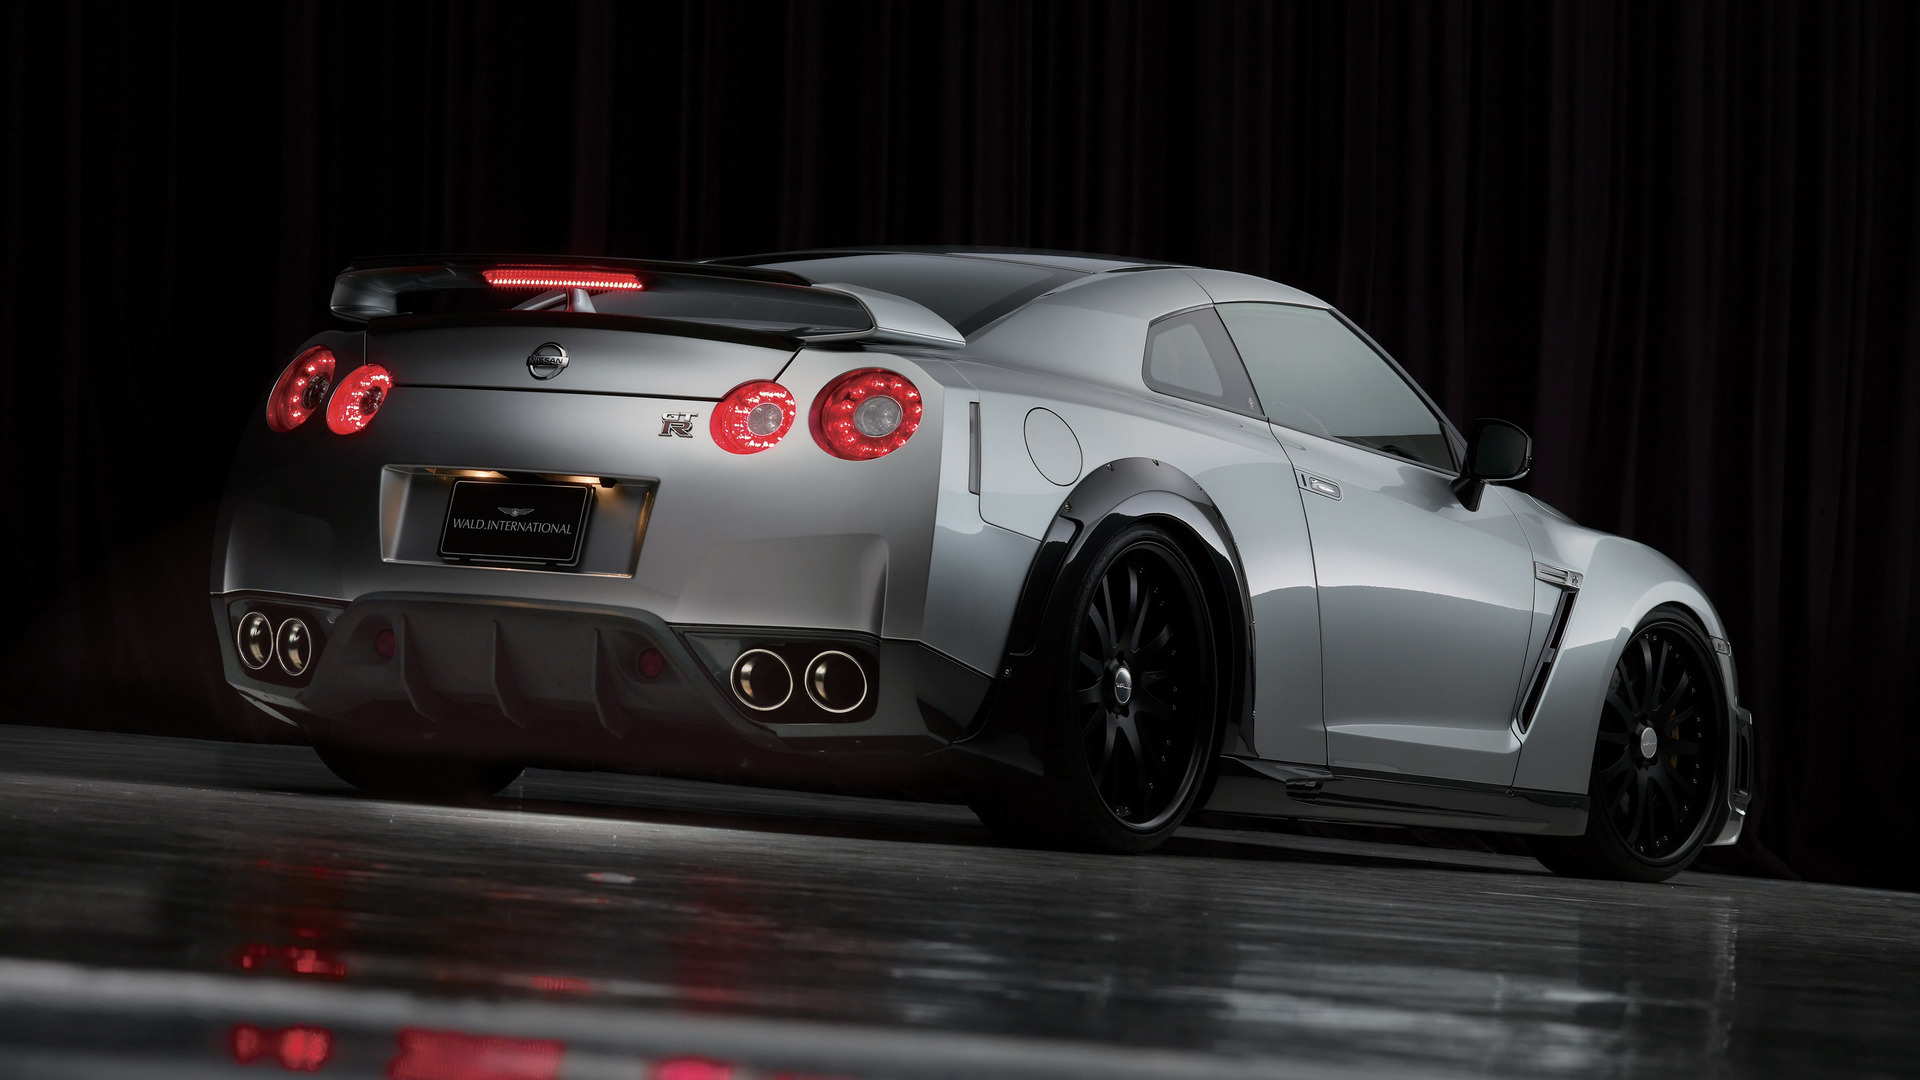 Awesome Nissan Car 1920X1080 Pixels Full HD Wallpaper Pack   Tech Bug 1920x1080